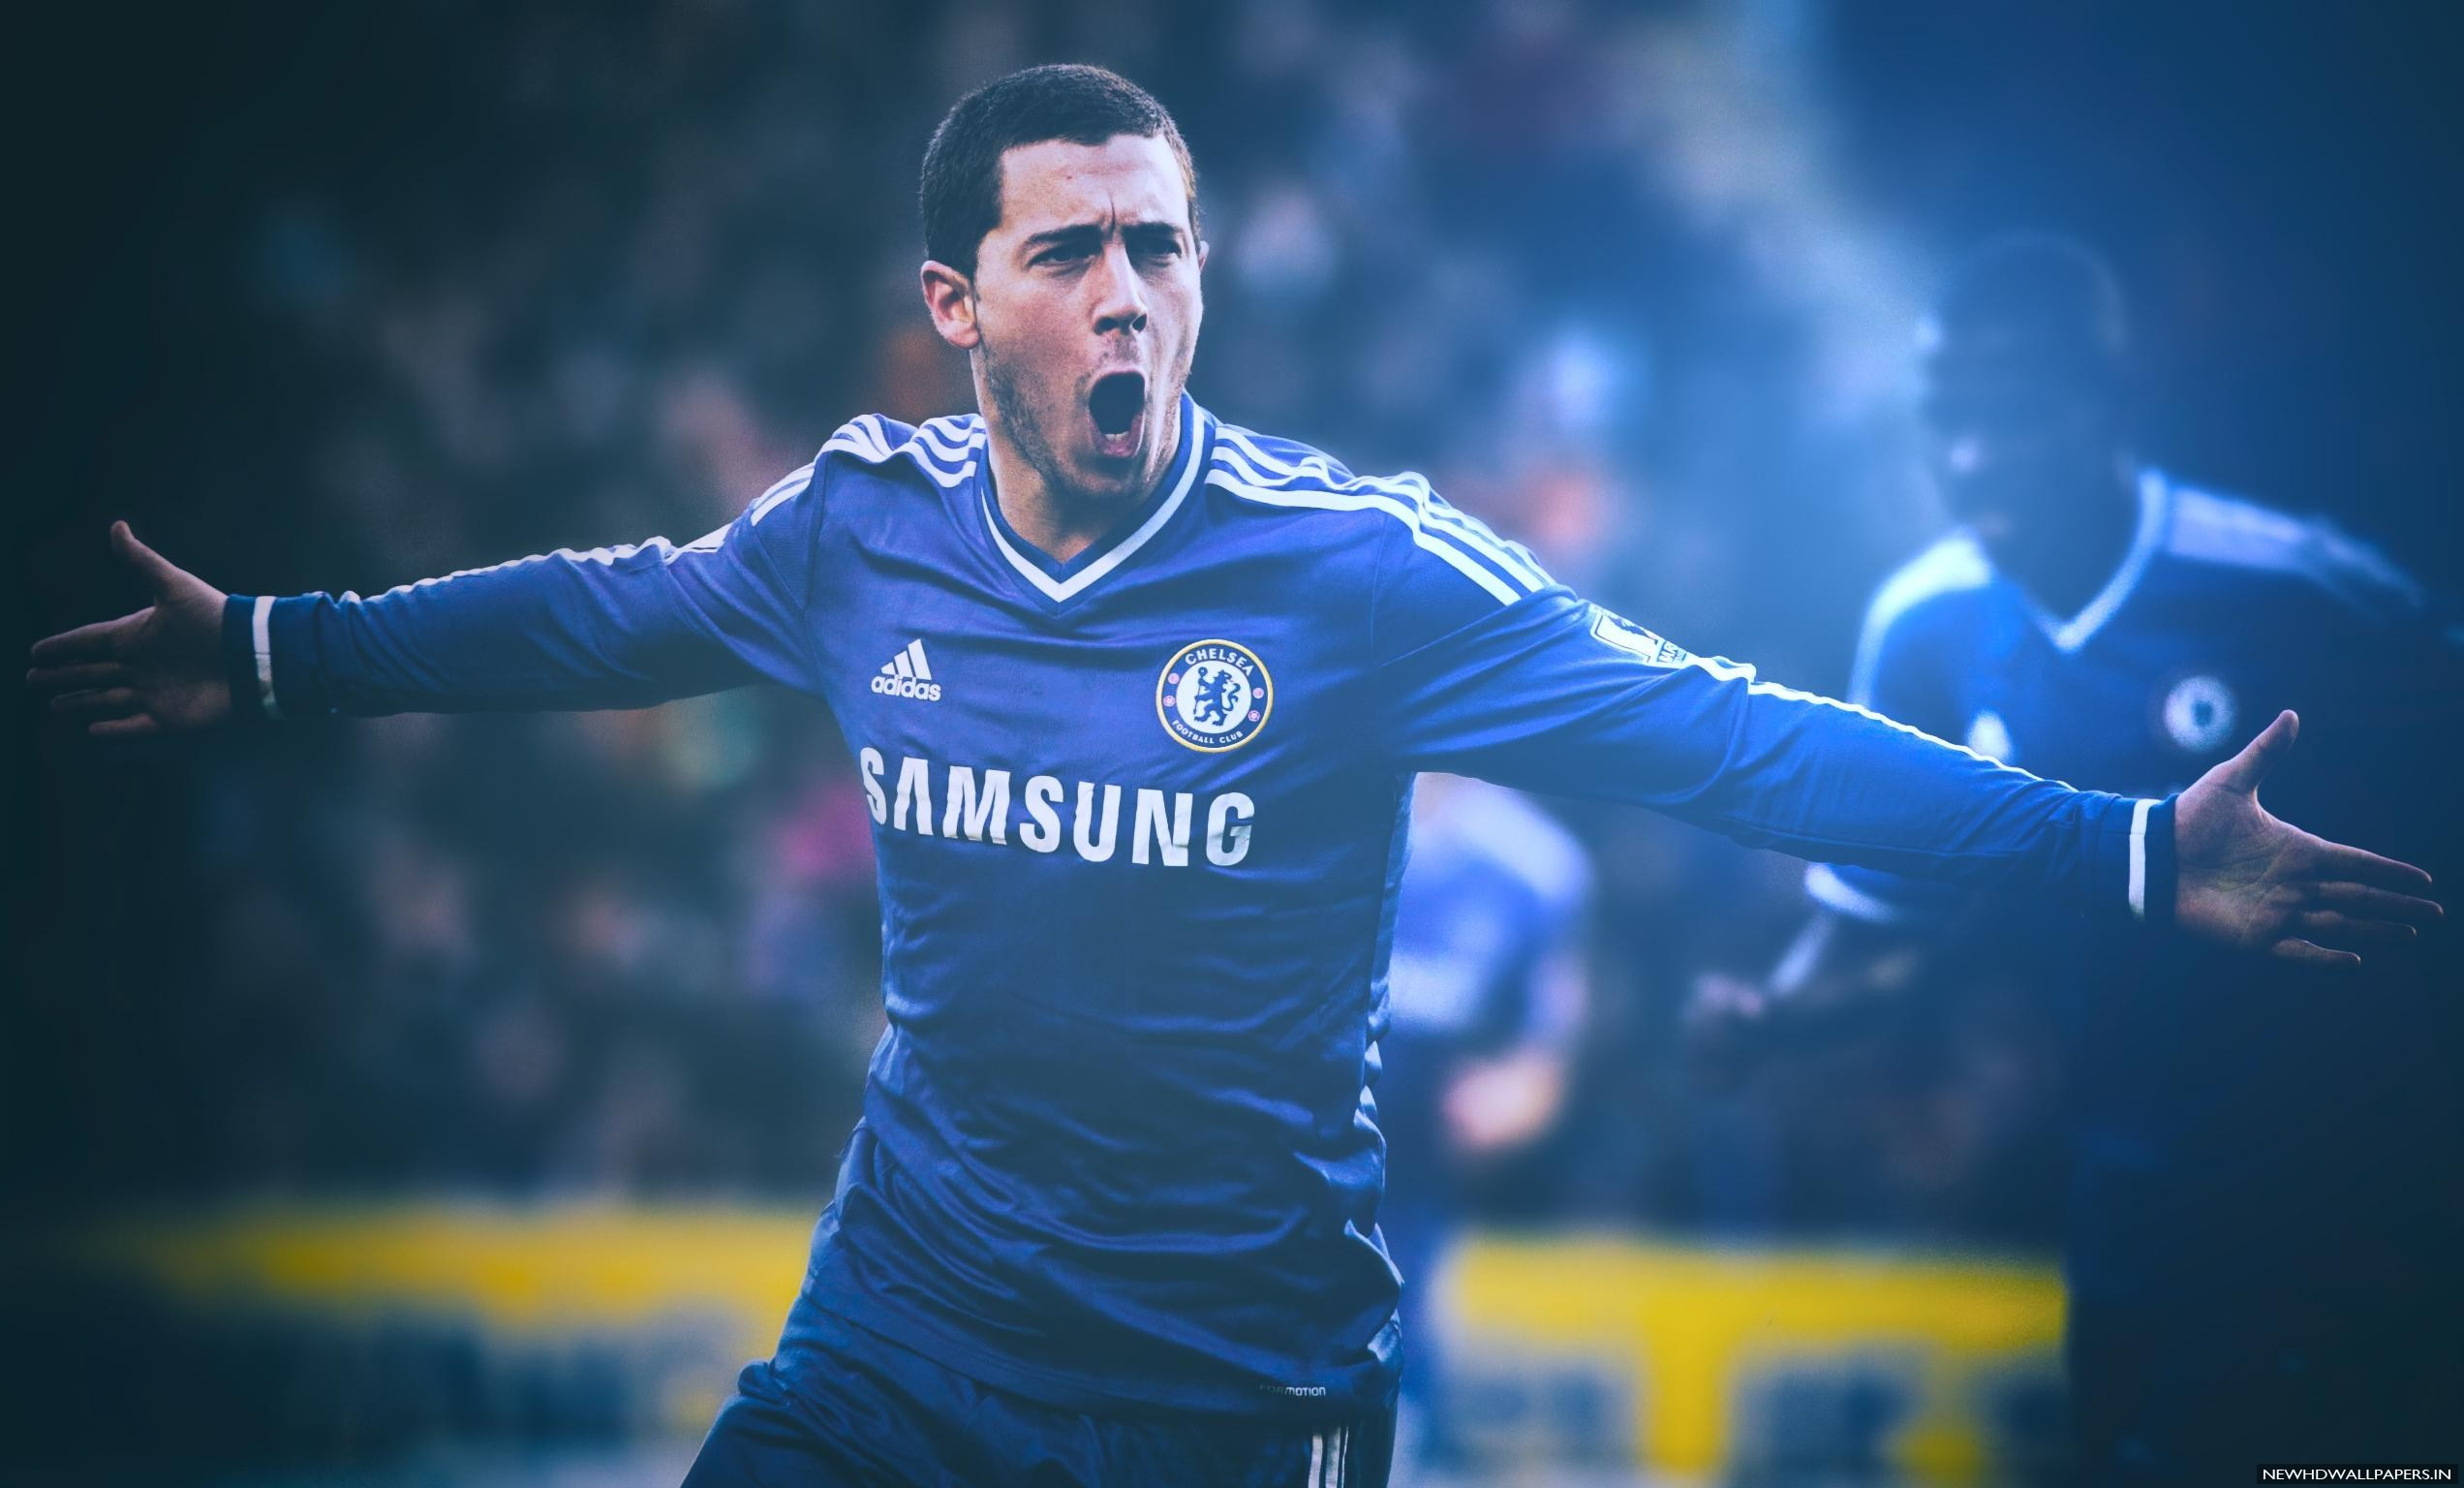 Download Eden Hazard Chelsea Footballer 2015 Image New Hd